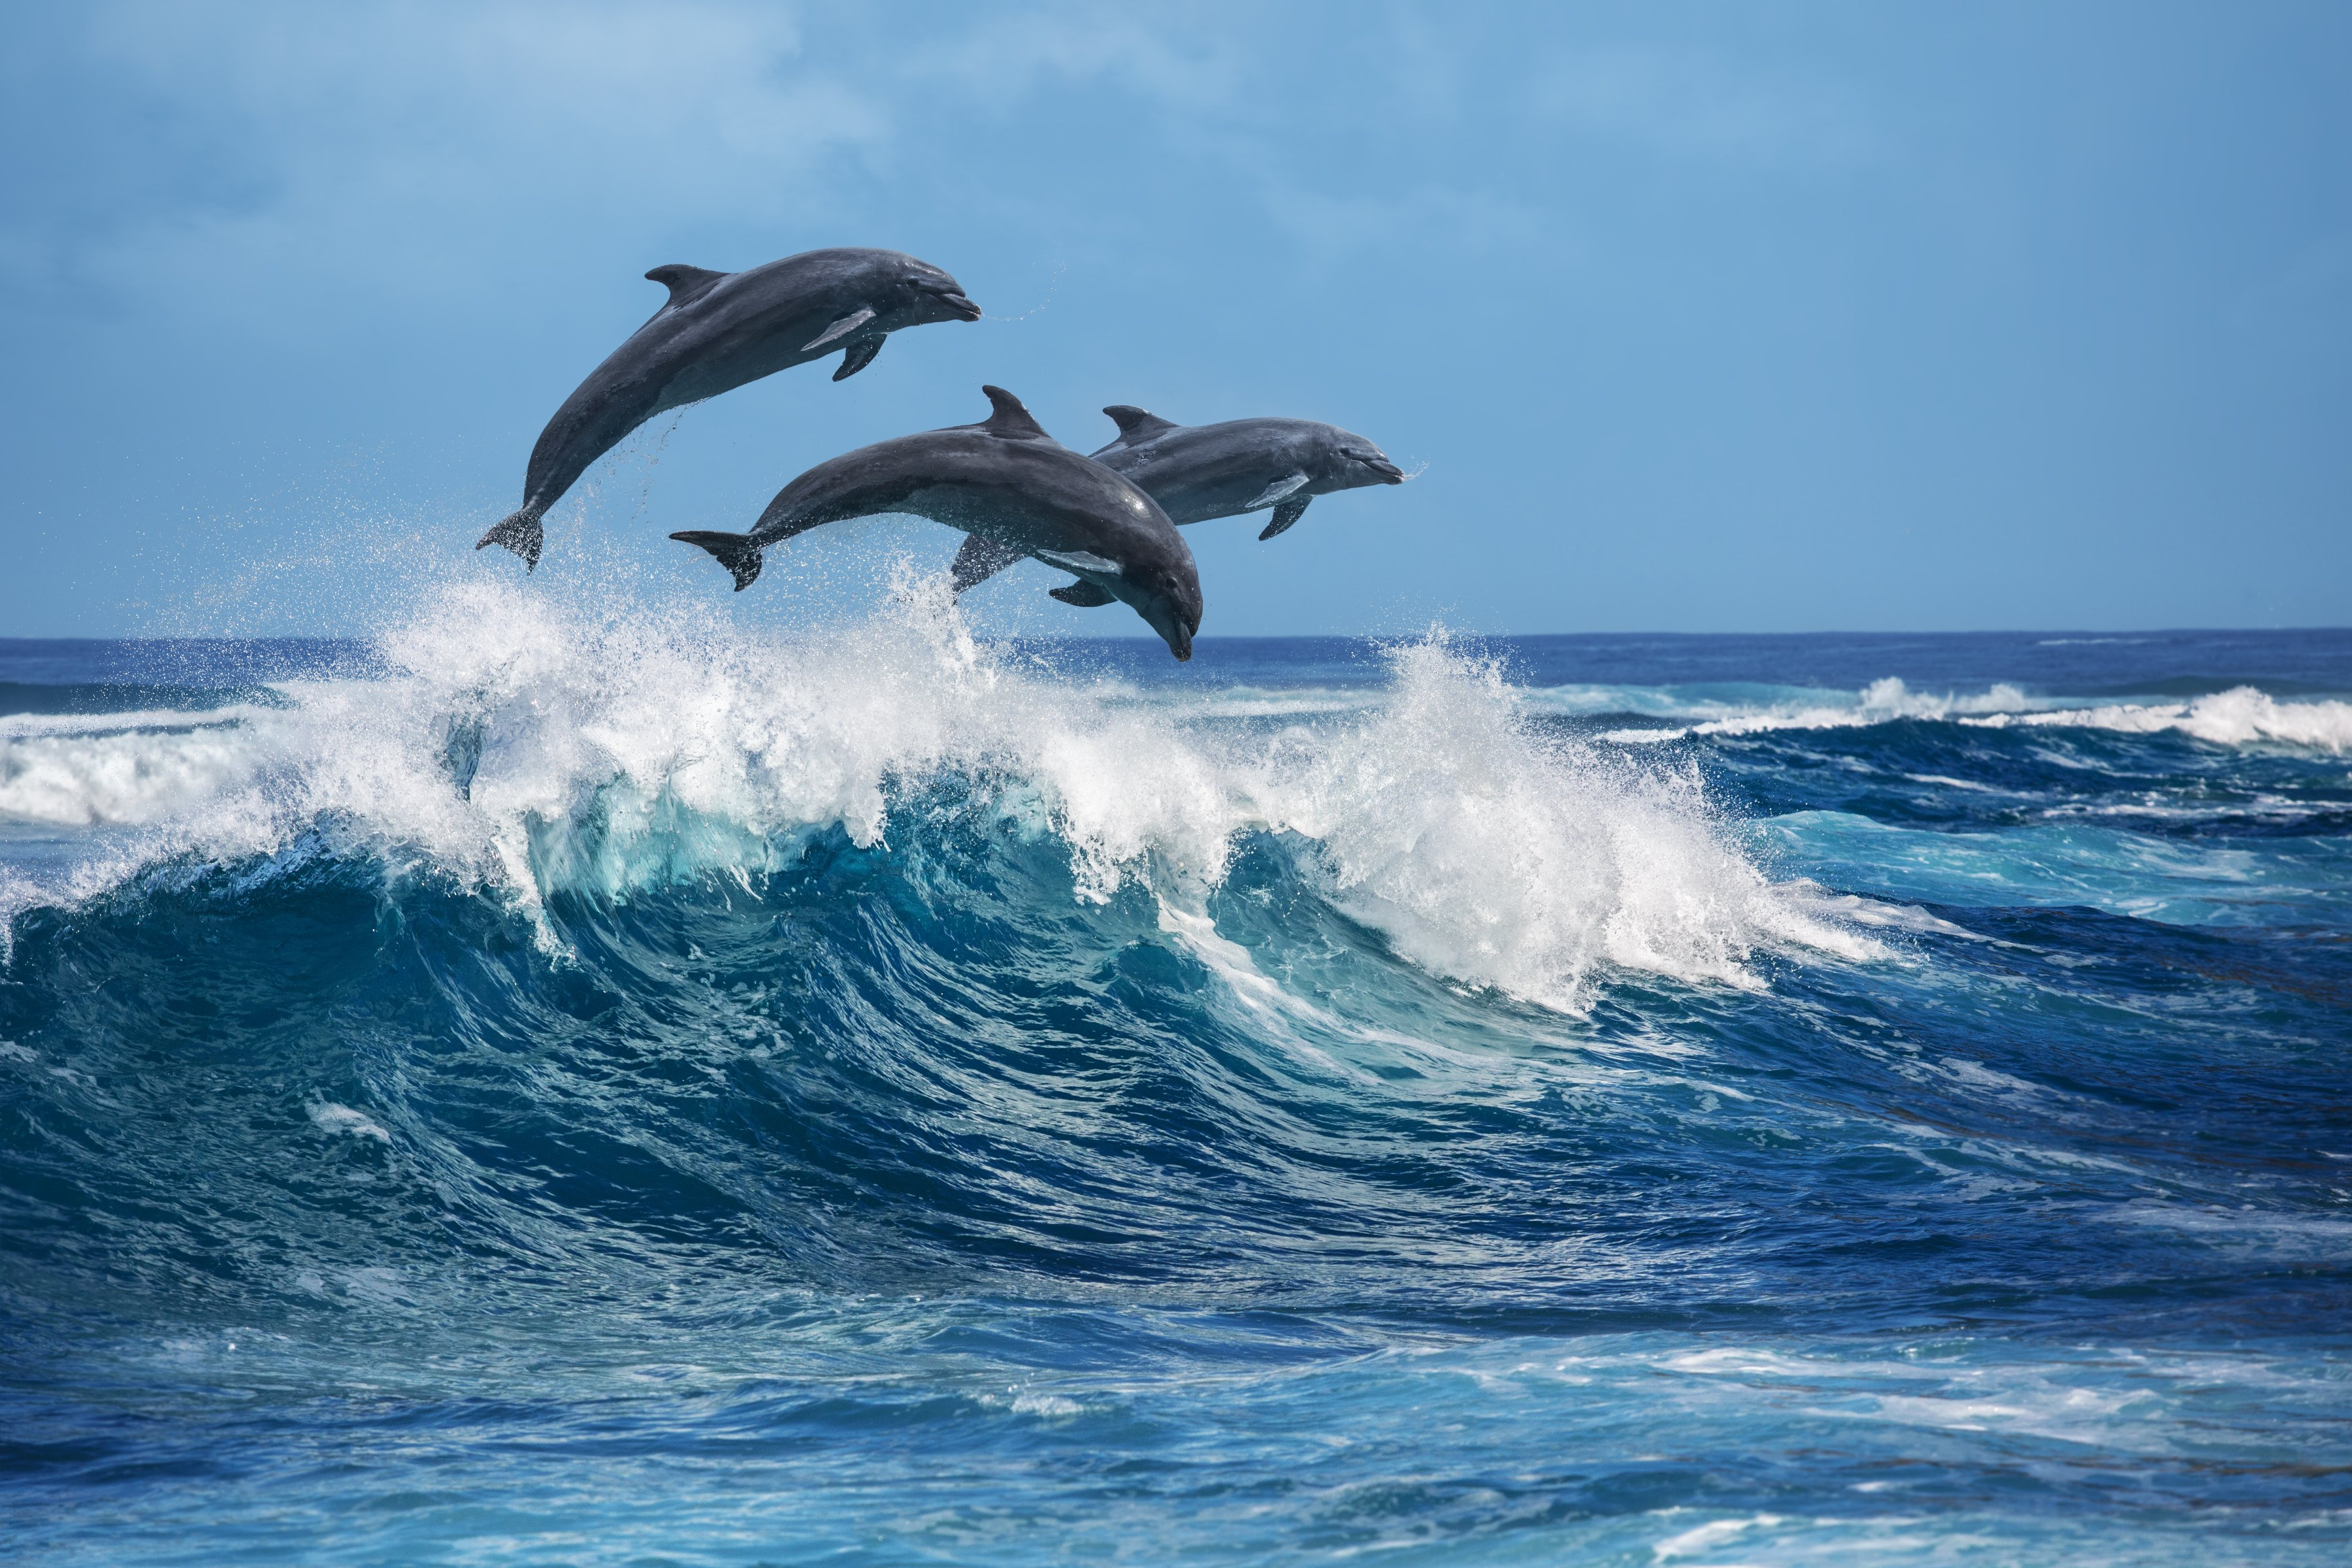 Playful dolphins jumping over breaking waves